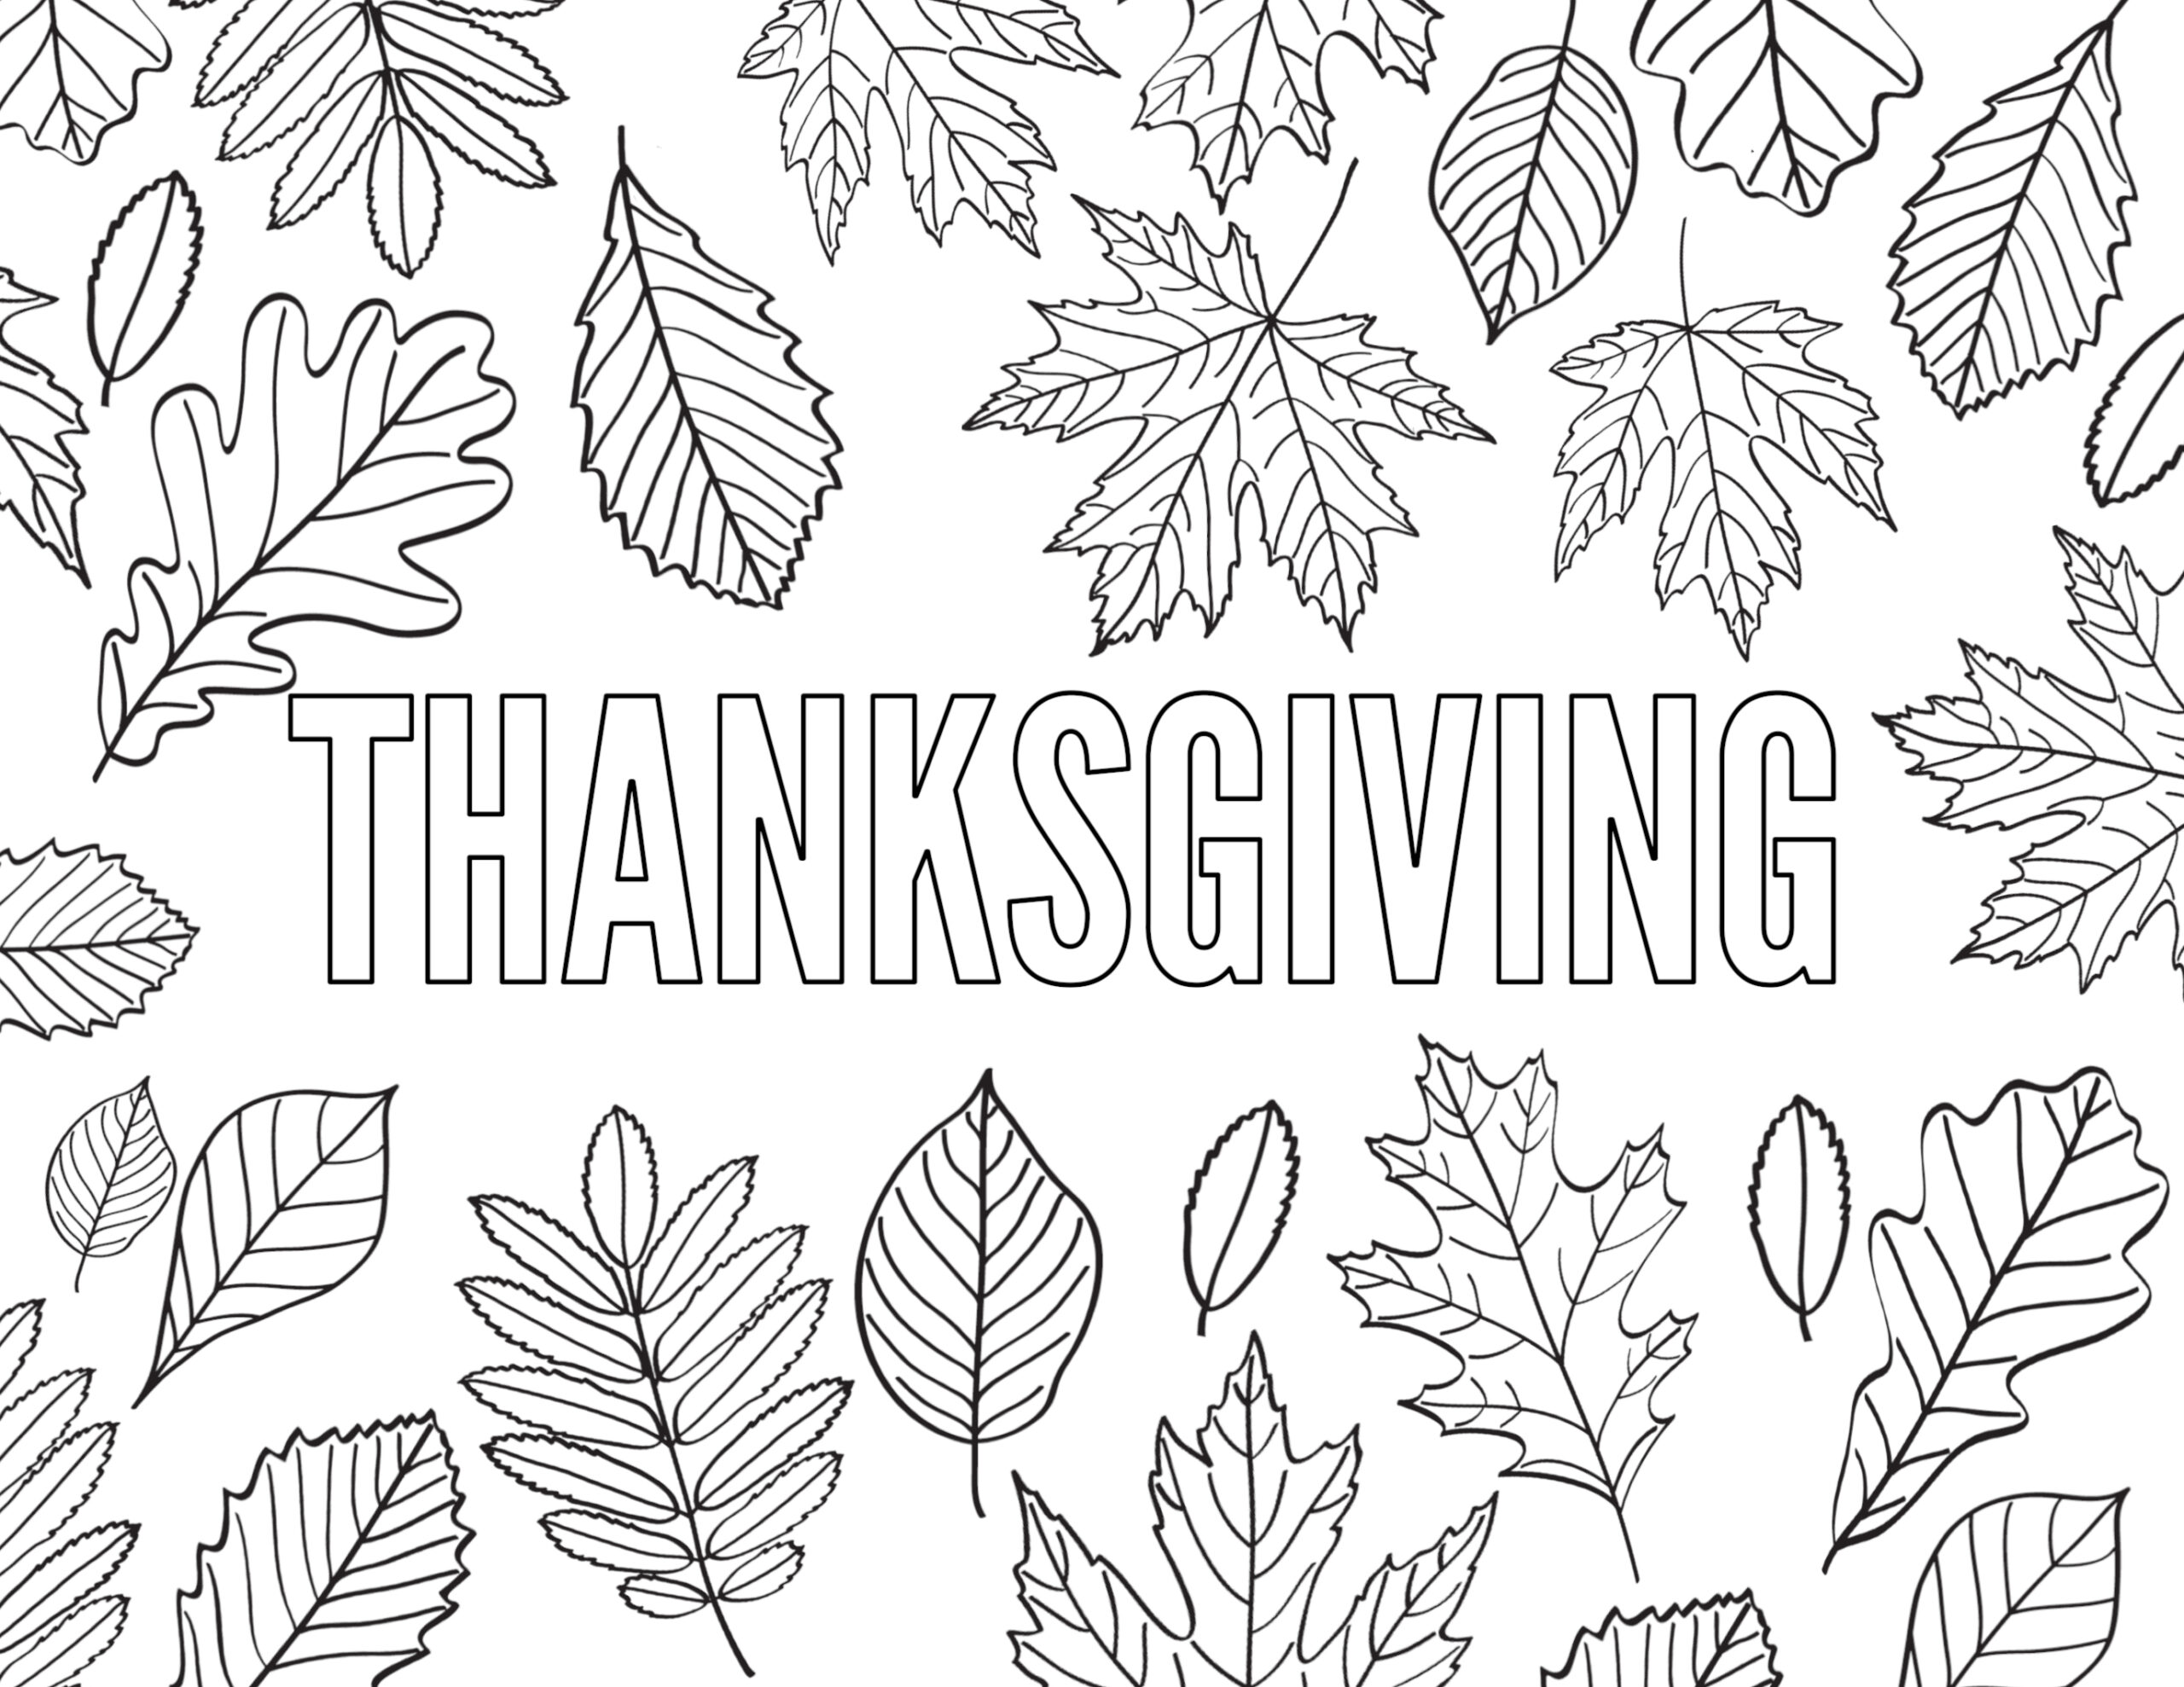 thanksgiving coloring free printable paper trail design art lesson plans for kids clean coloring pages Thanksgiving Coloring Page Printable